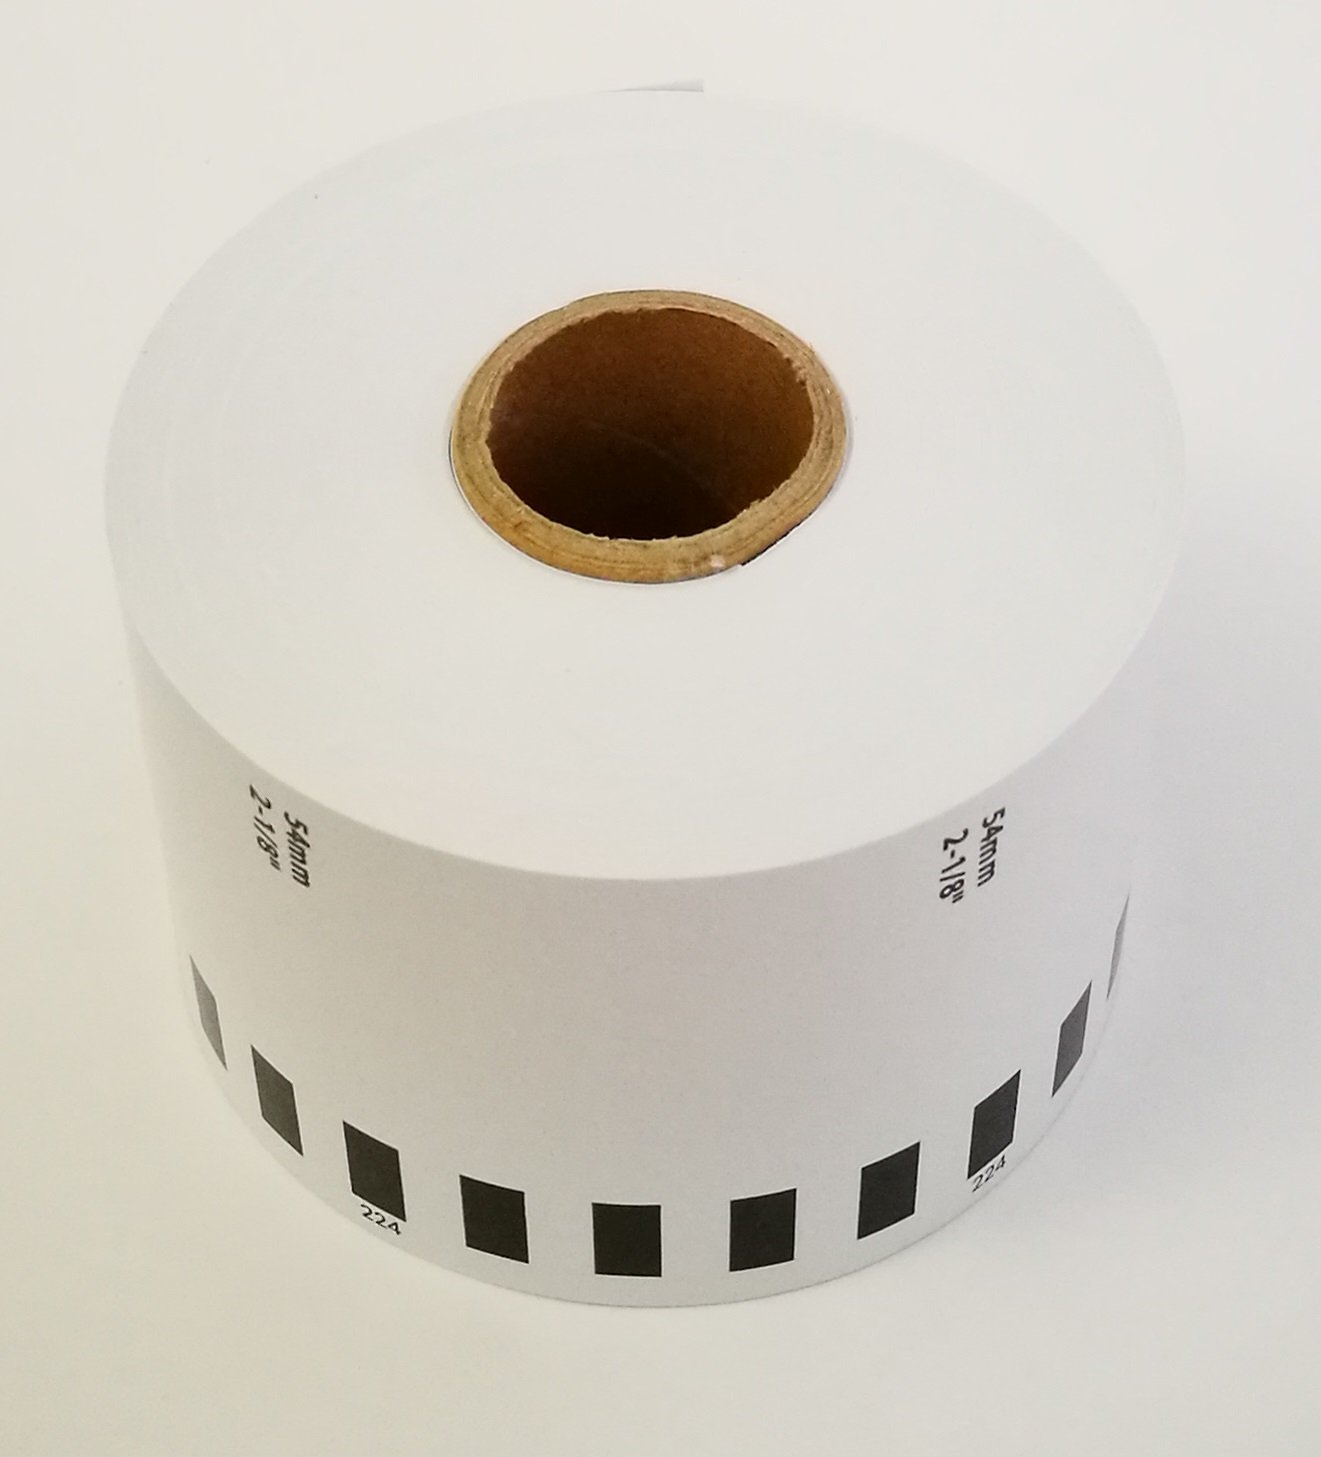 Brother-Compatible DKN5224 DK-N5224 Non-Adhesive Continuous Paper Labels (1 roll + 1 reusable cartridge)